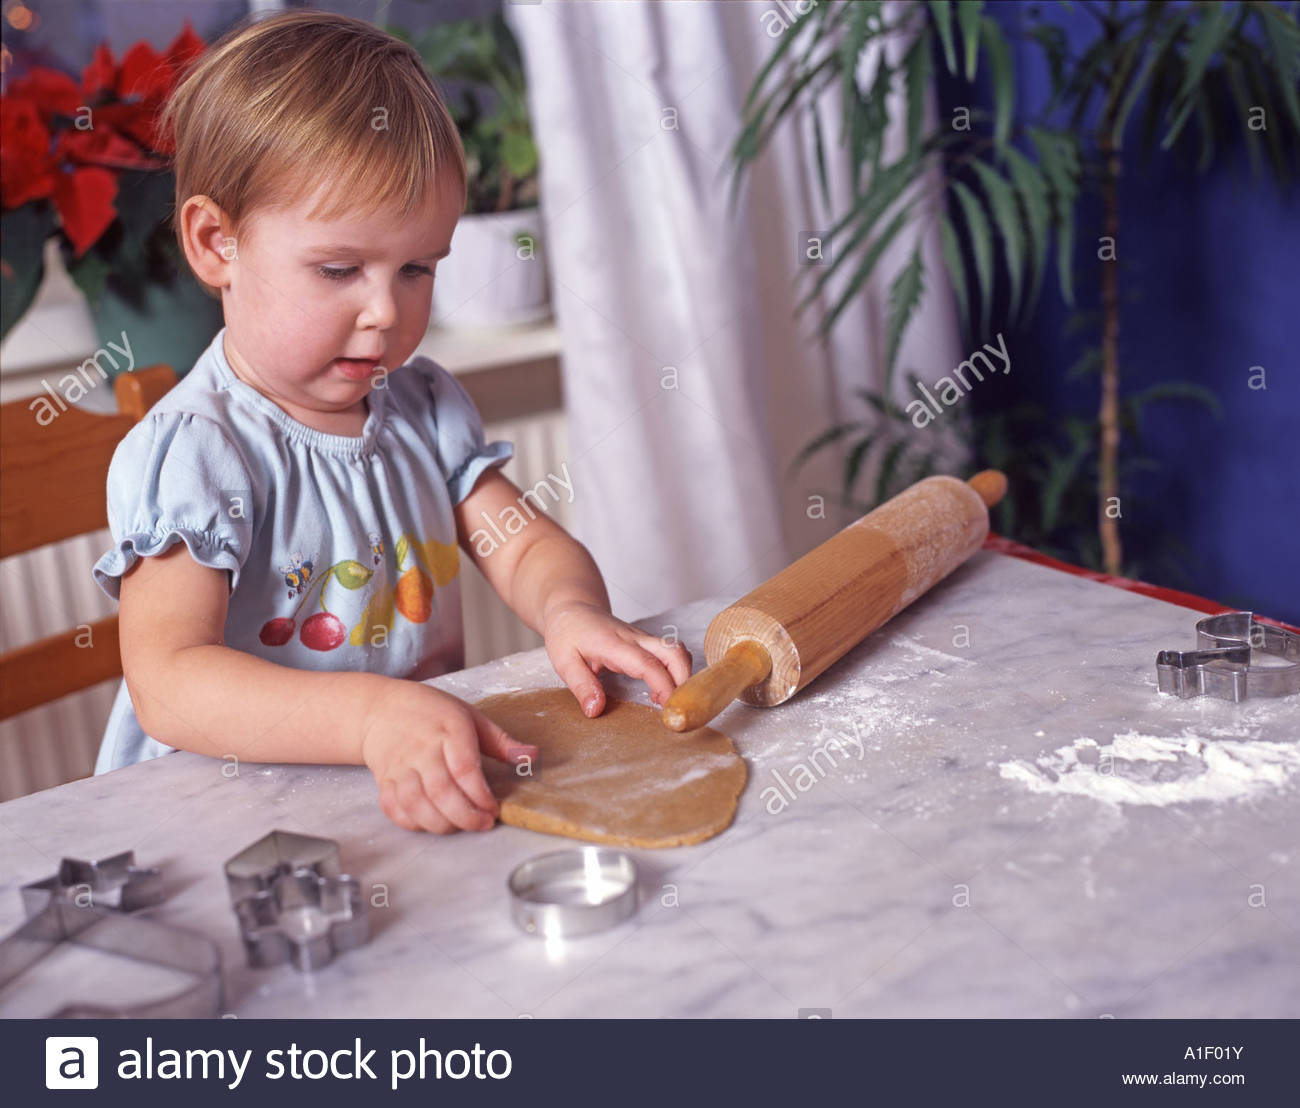 Two year old girl baking gingerbread at Christmastime - Stock Image